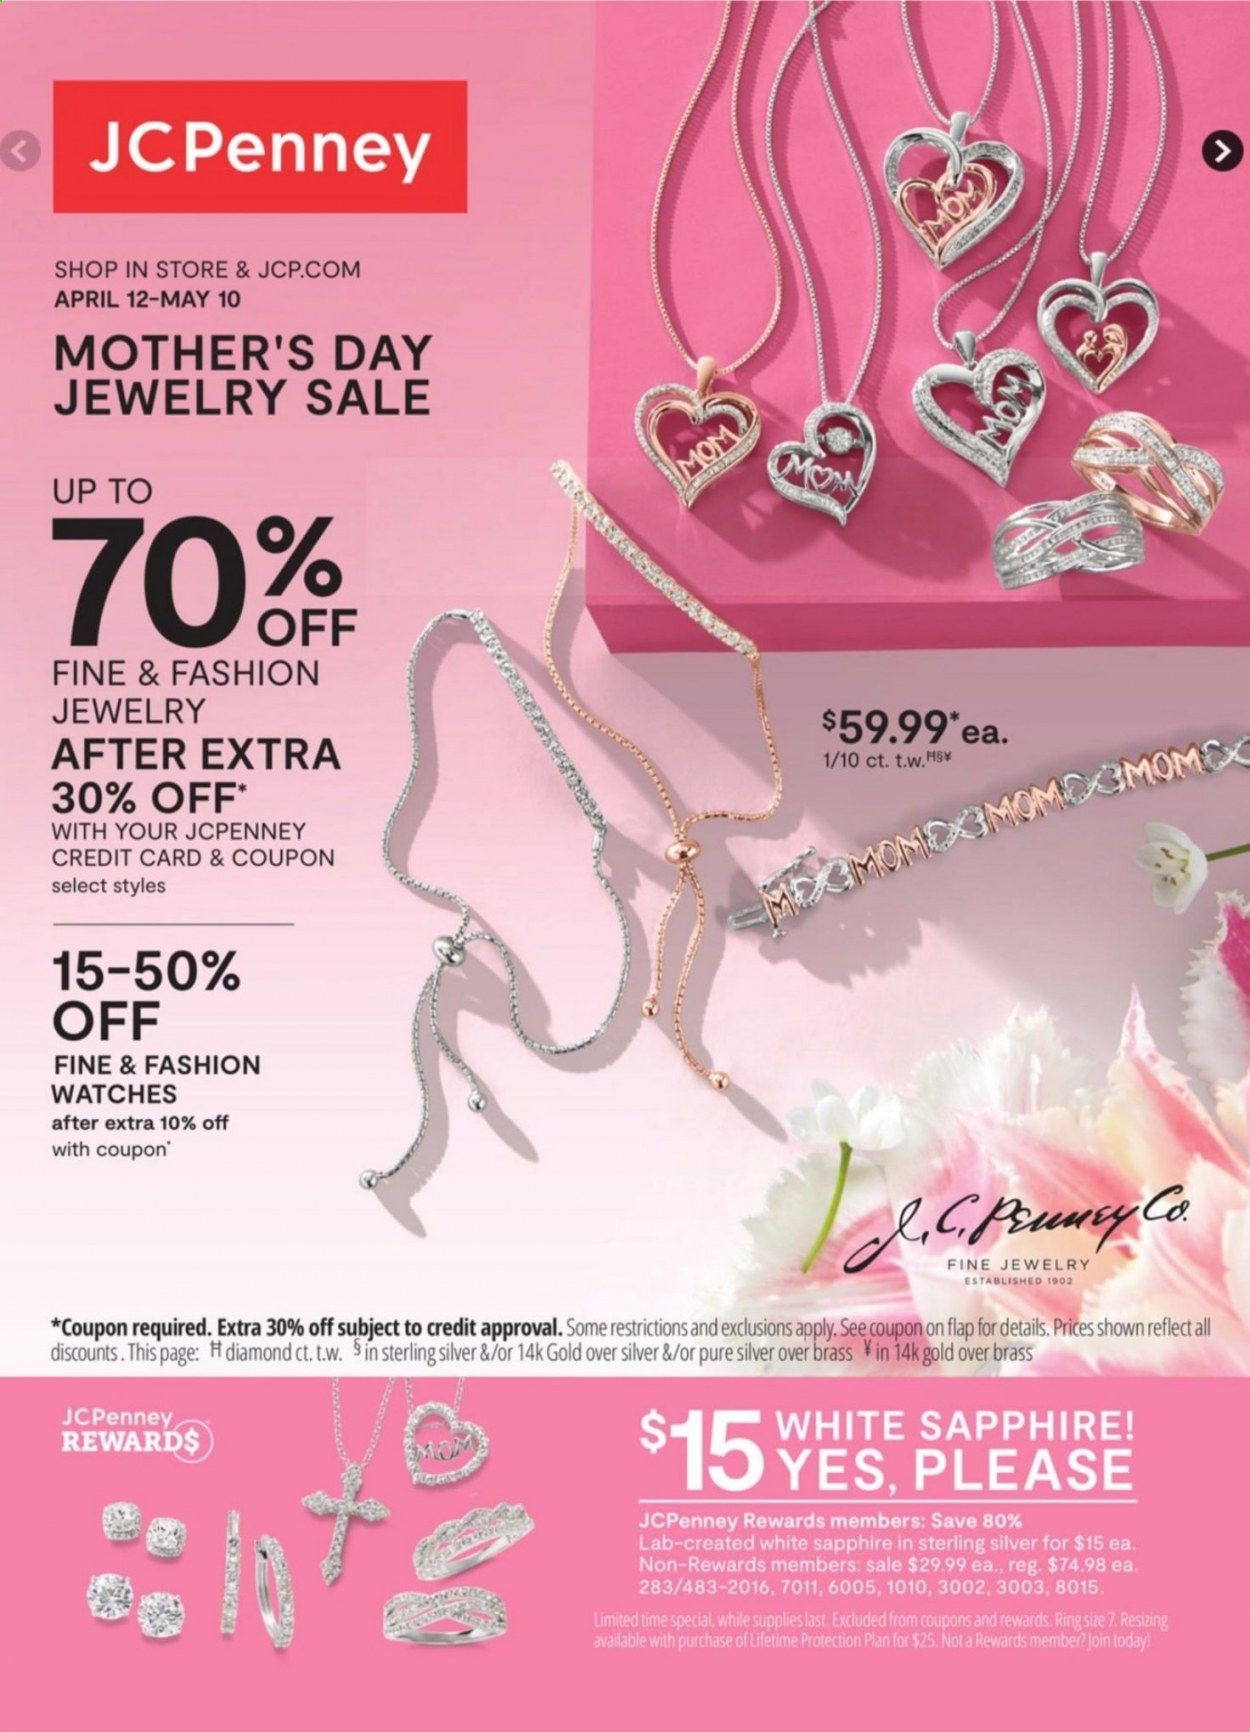 JCPenney Jewelry Sale from april 12 to may 10 2021